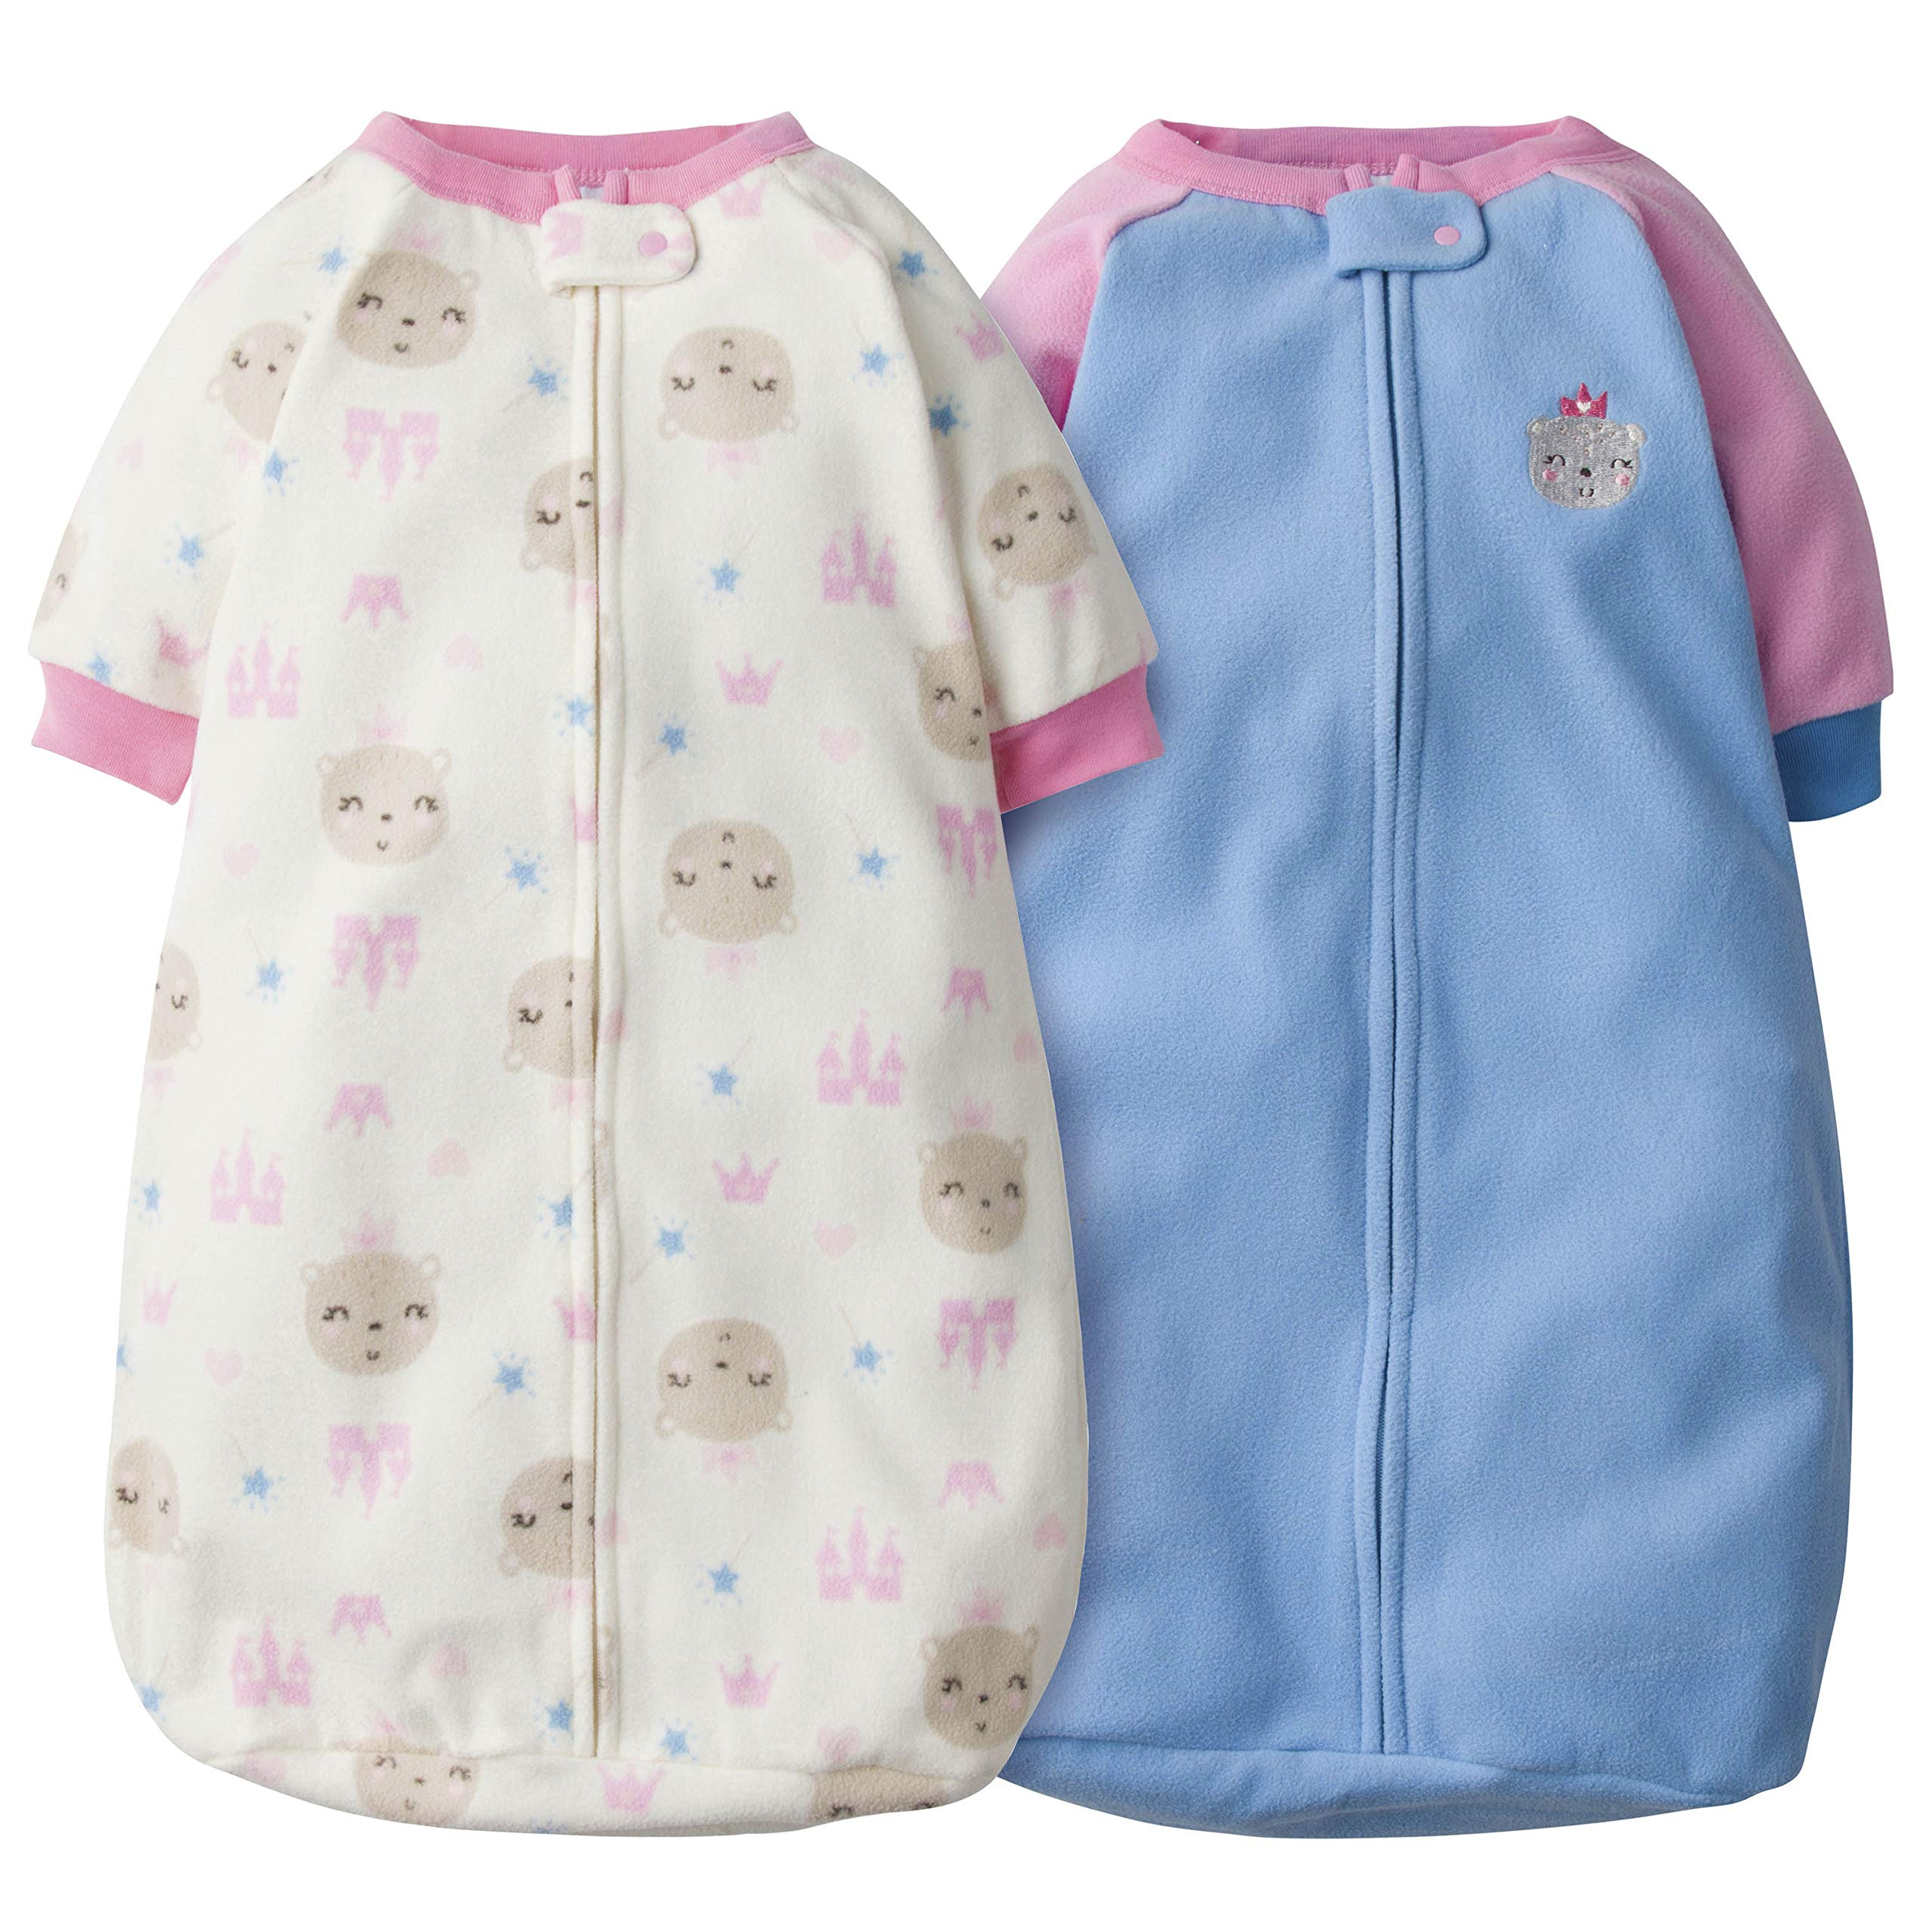 Gerber Baby Girls 2-Pack Sleep Bag